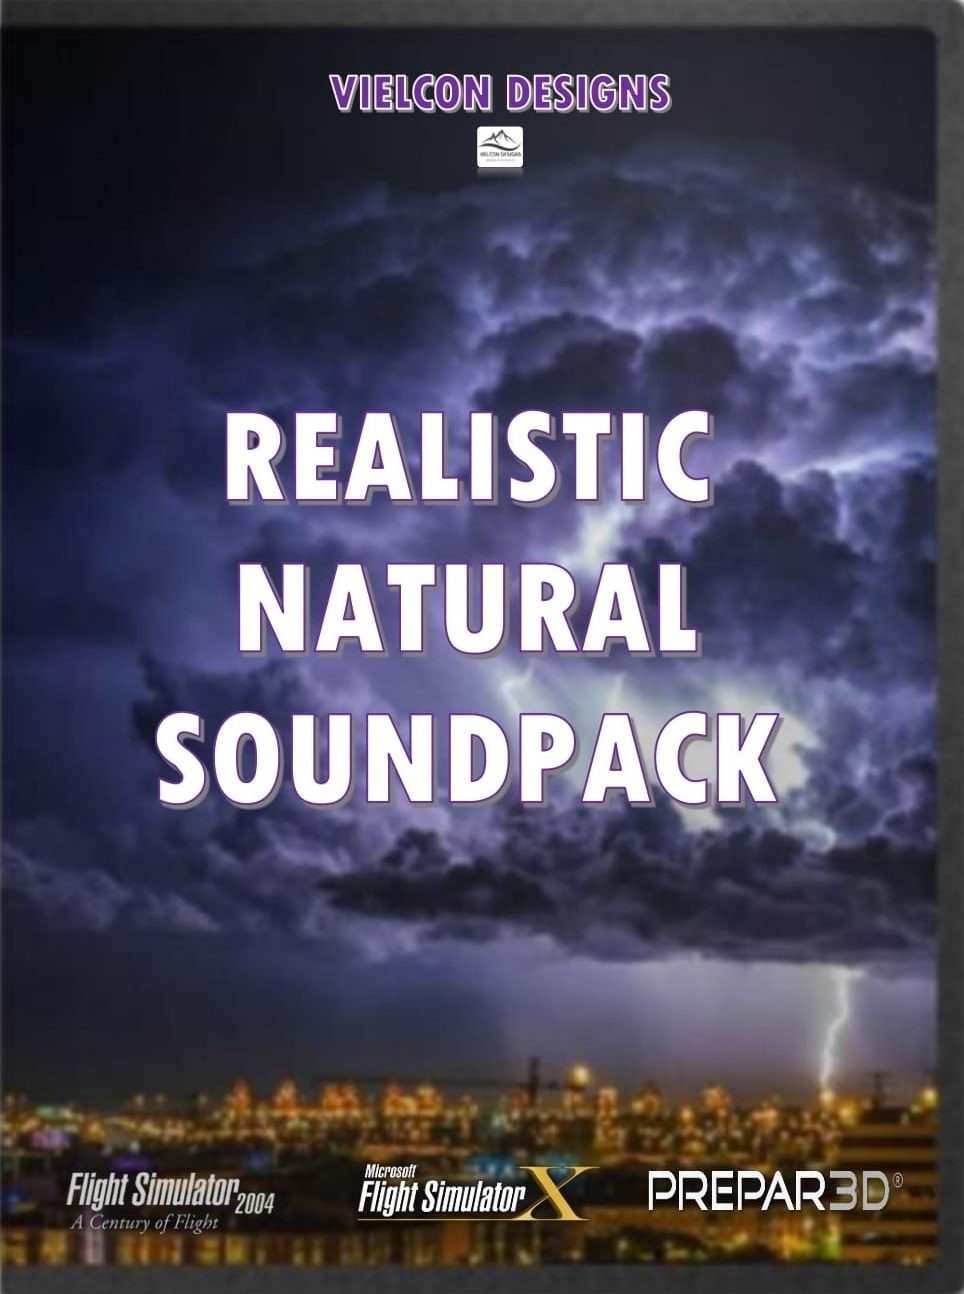 VIELCON DESIGNS - REALISTIC NATURAL SOUNDPACK 真实自然音效包 (FS2004/FSX/P3D)